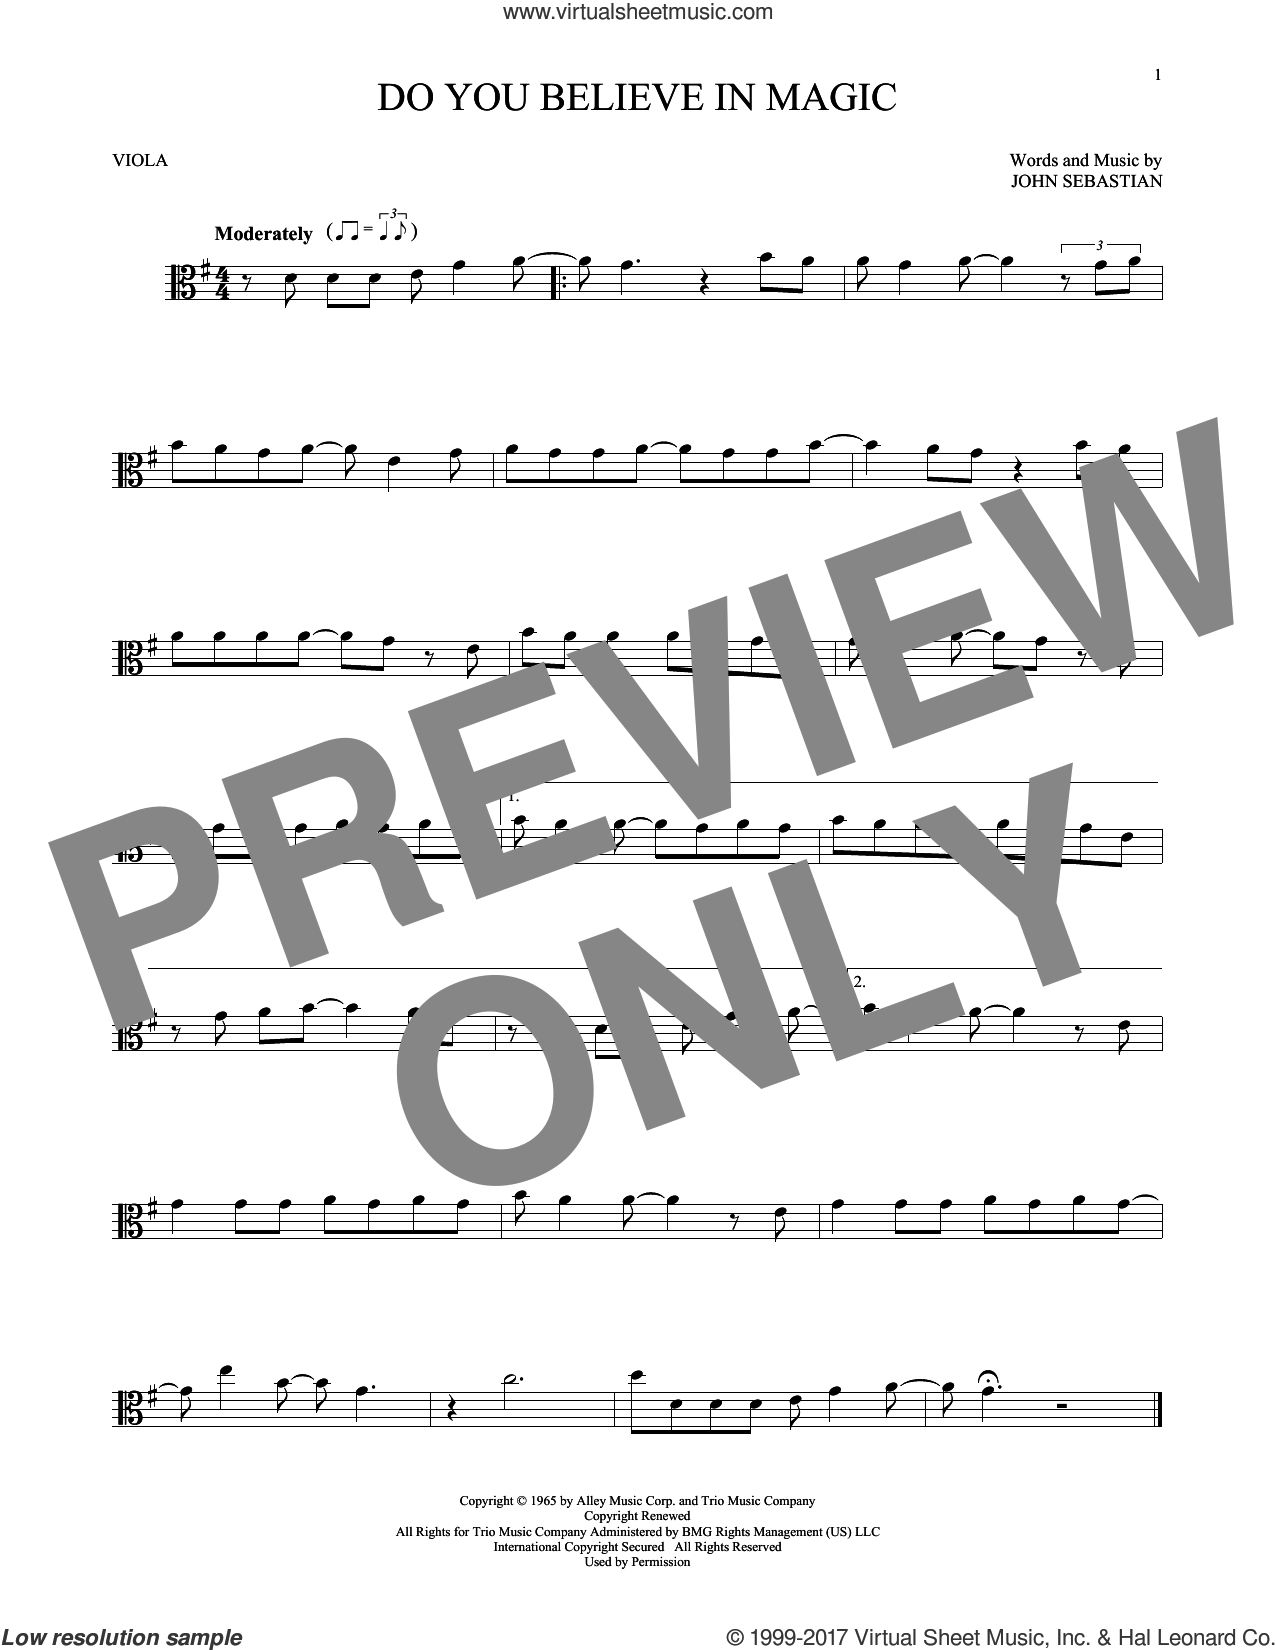 Do You Believe In Magic sheet music for viola solo by Lovin' Spoonful and John Sebastian, intermediate skill level